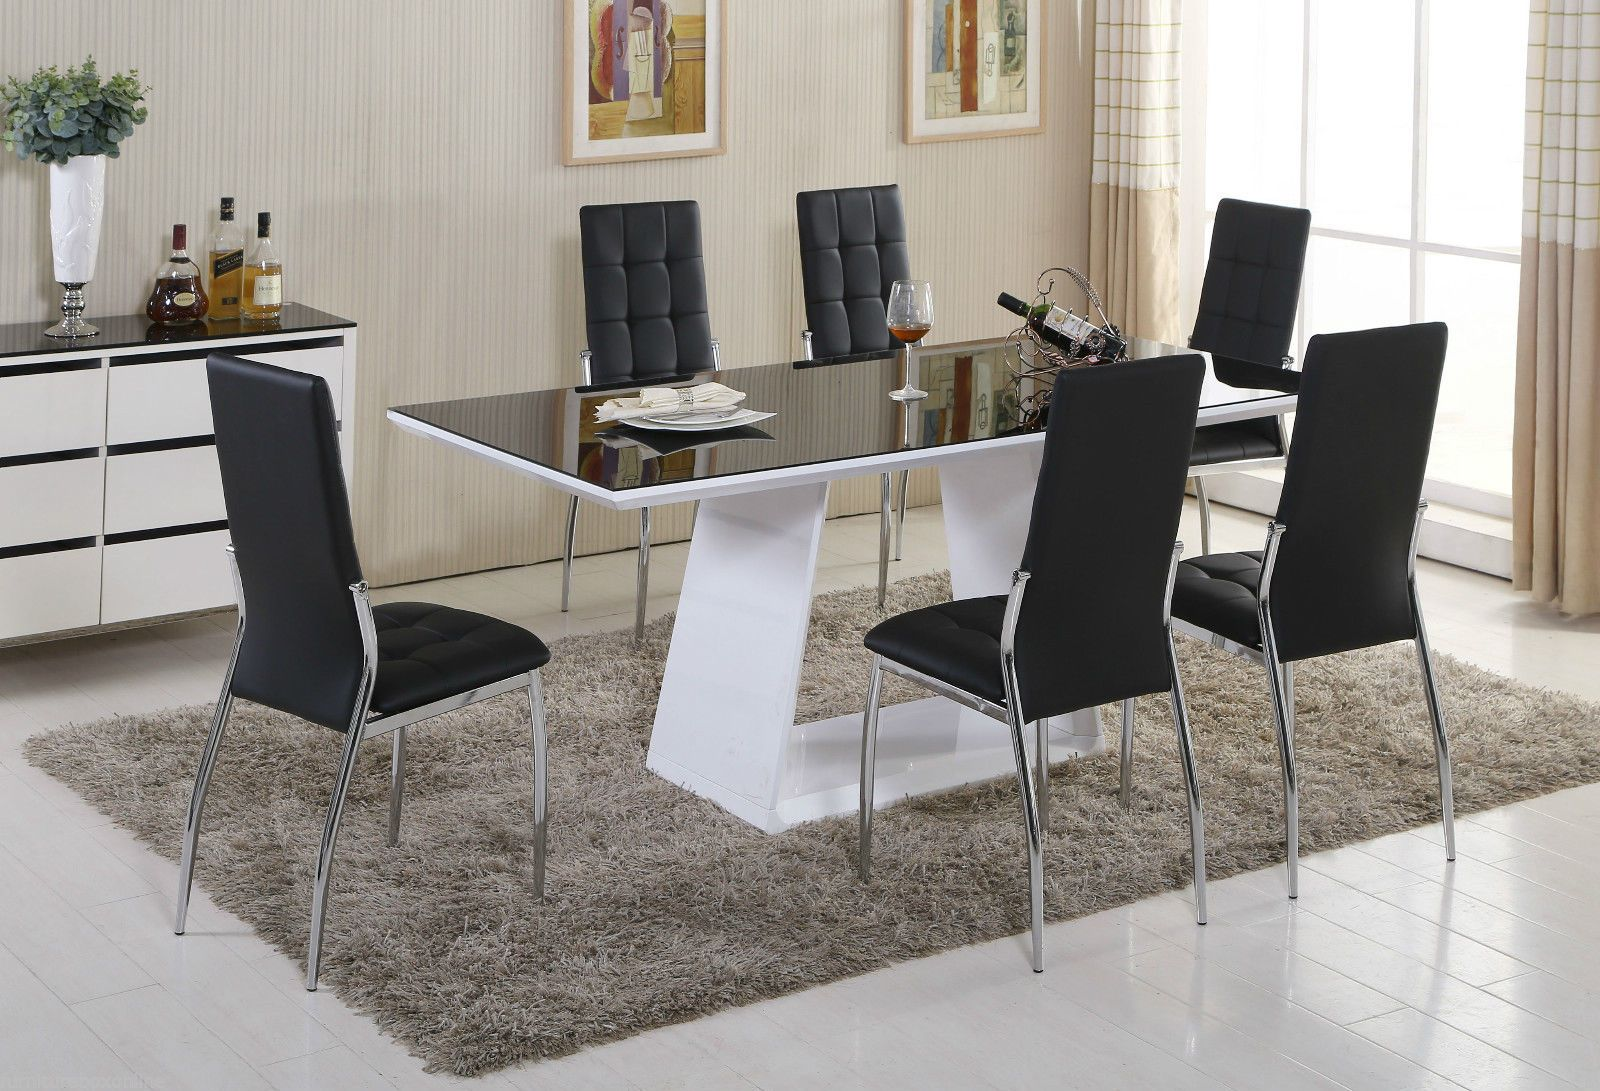 Contemporary Dining Room Tables And Chairs Impressive Dining Room Table Dining Table And Chairs Black And White Decorating Inspiration